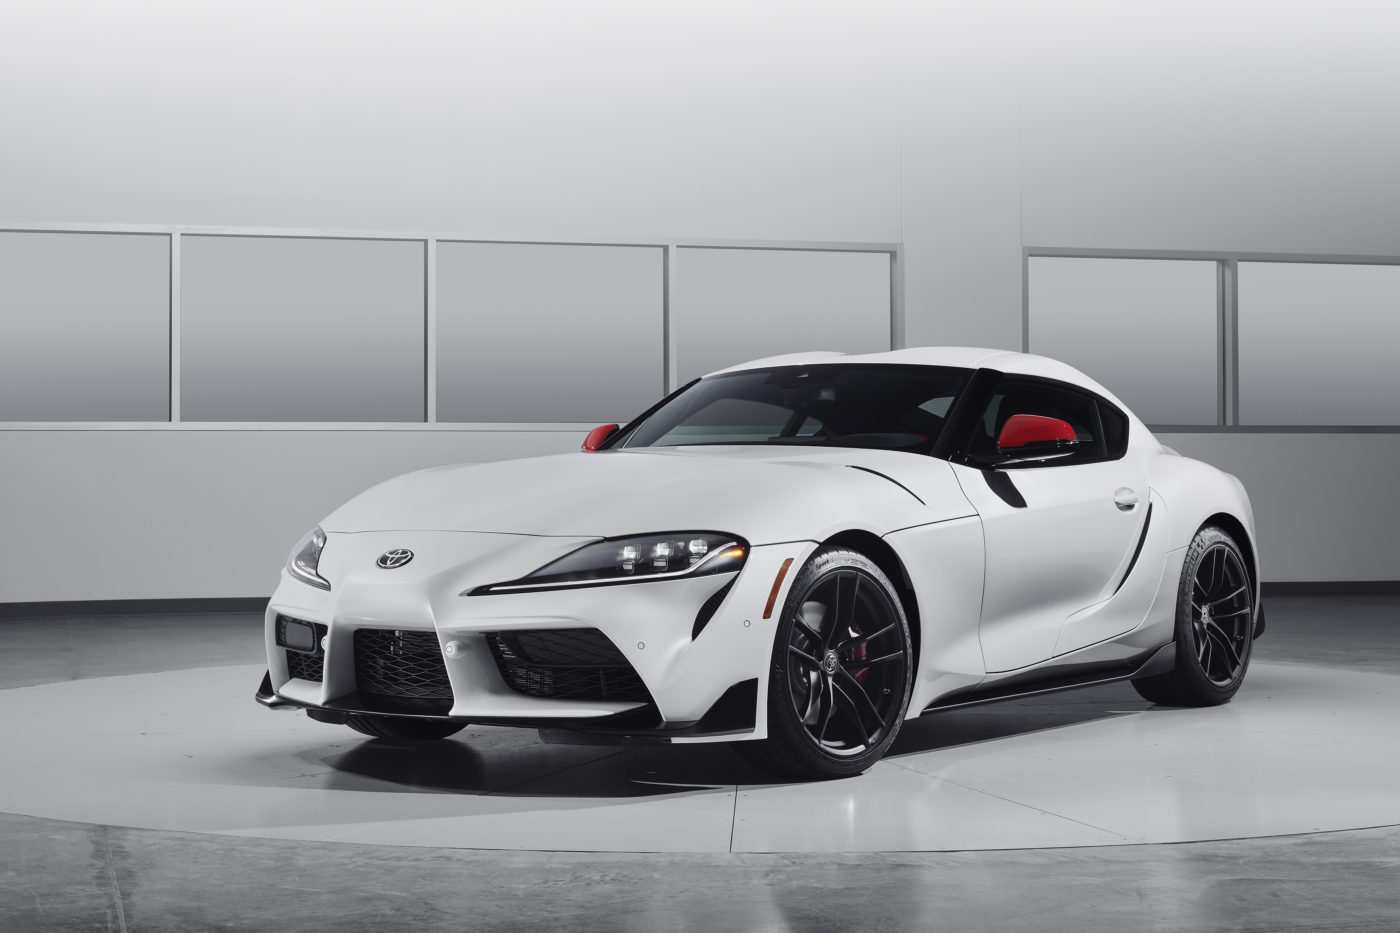 55 The Best 2020 Toyota Supra Quarter Mile Pricing